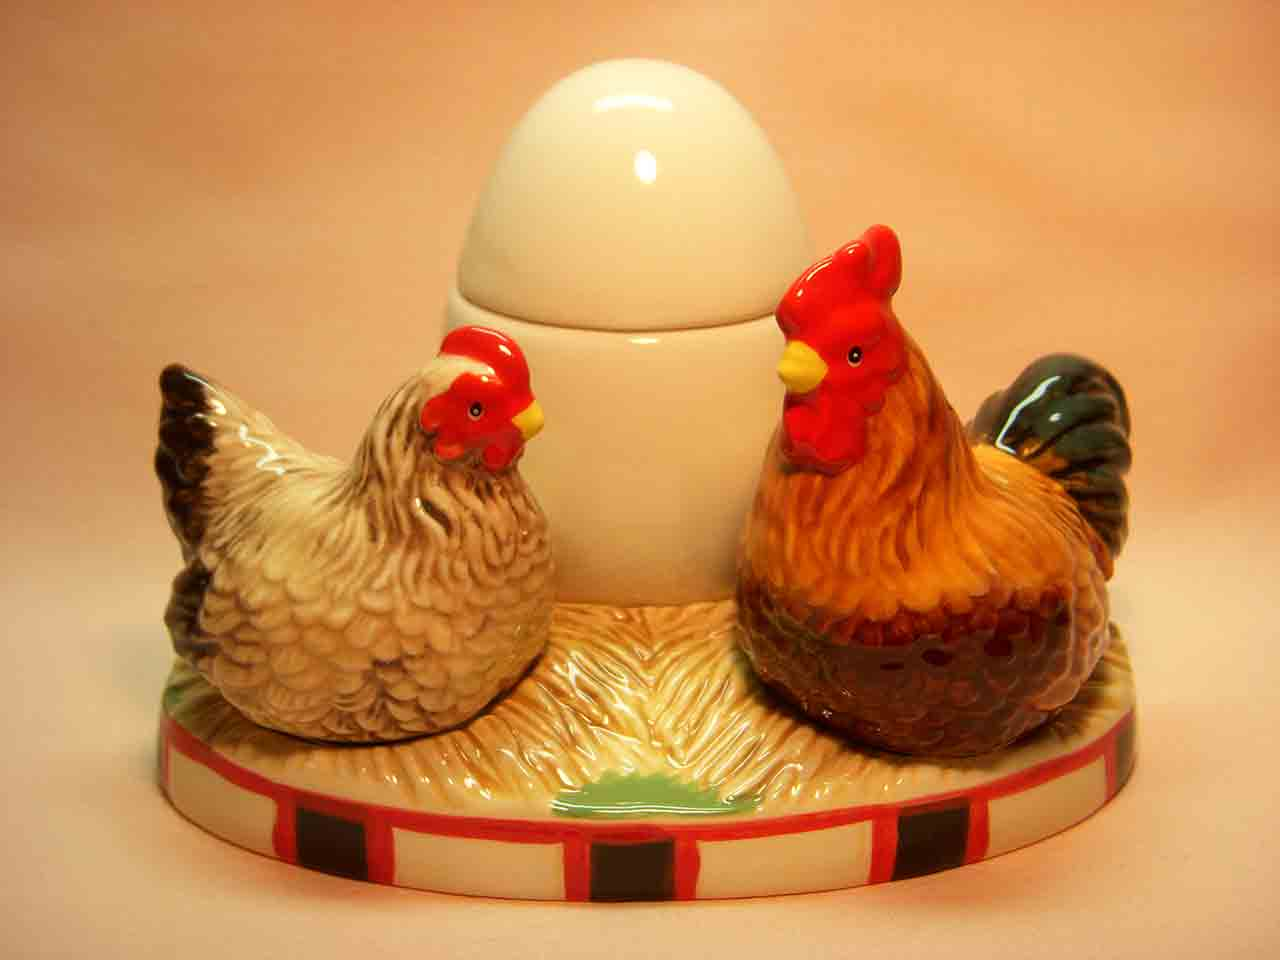 Chickens with egg Mwah Westland Giftware salt and pepper shakers